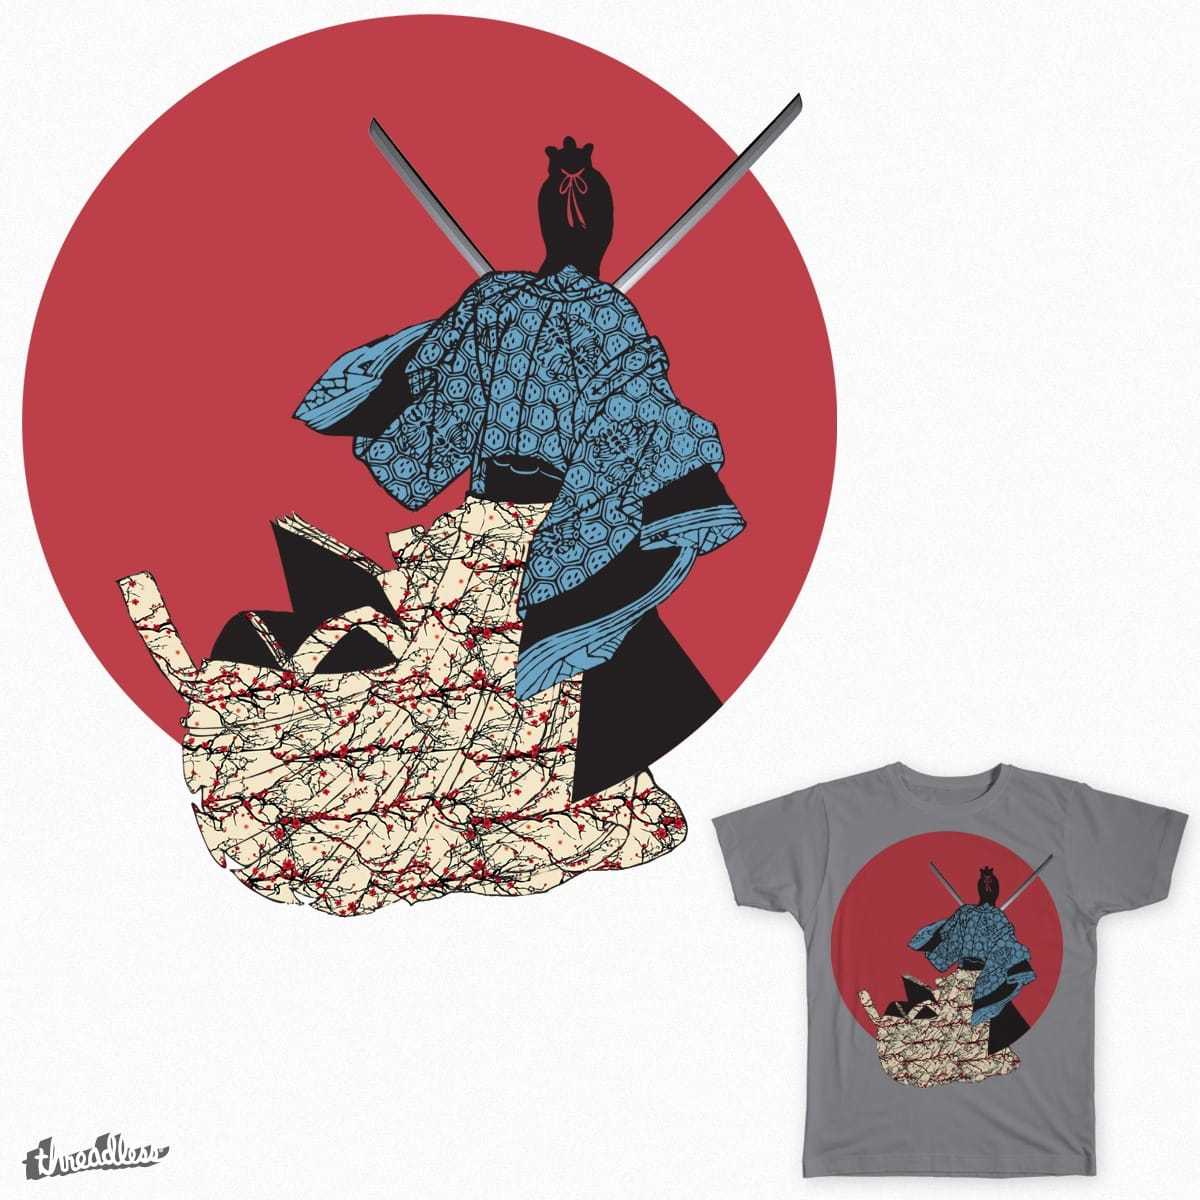 Dual Wielding Samurai by fatmofos on Threadless